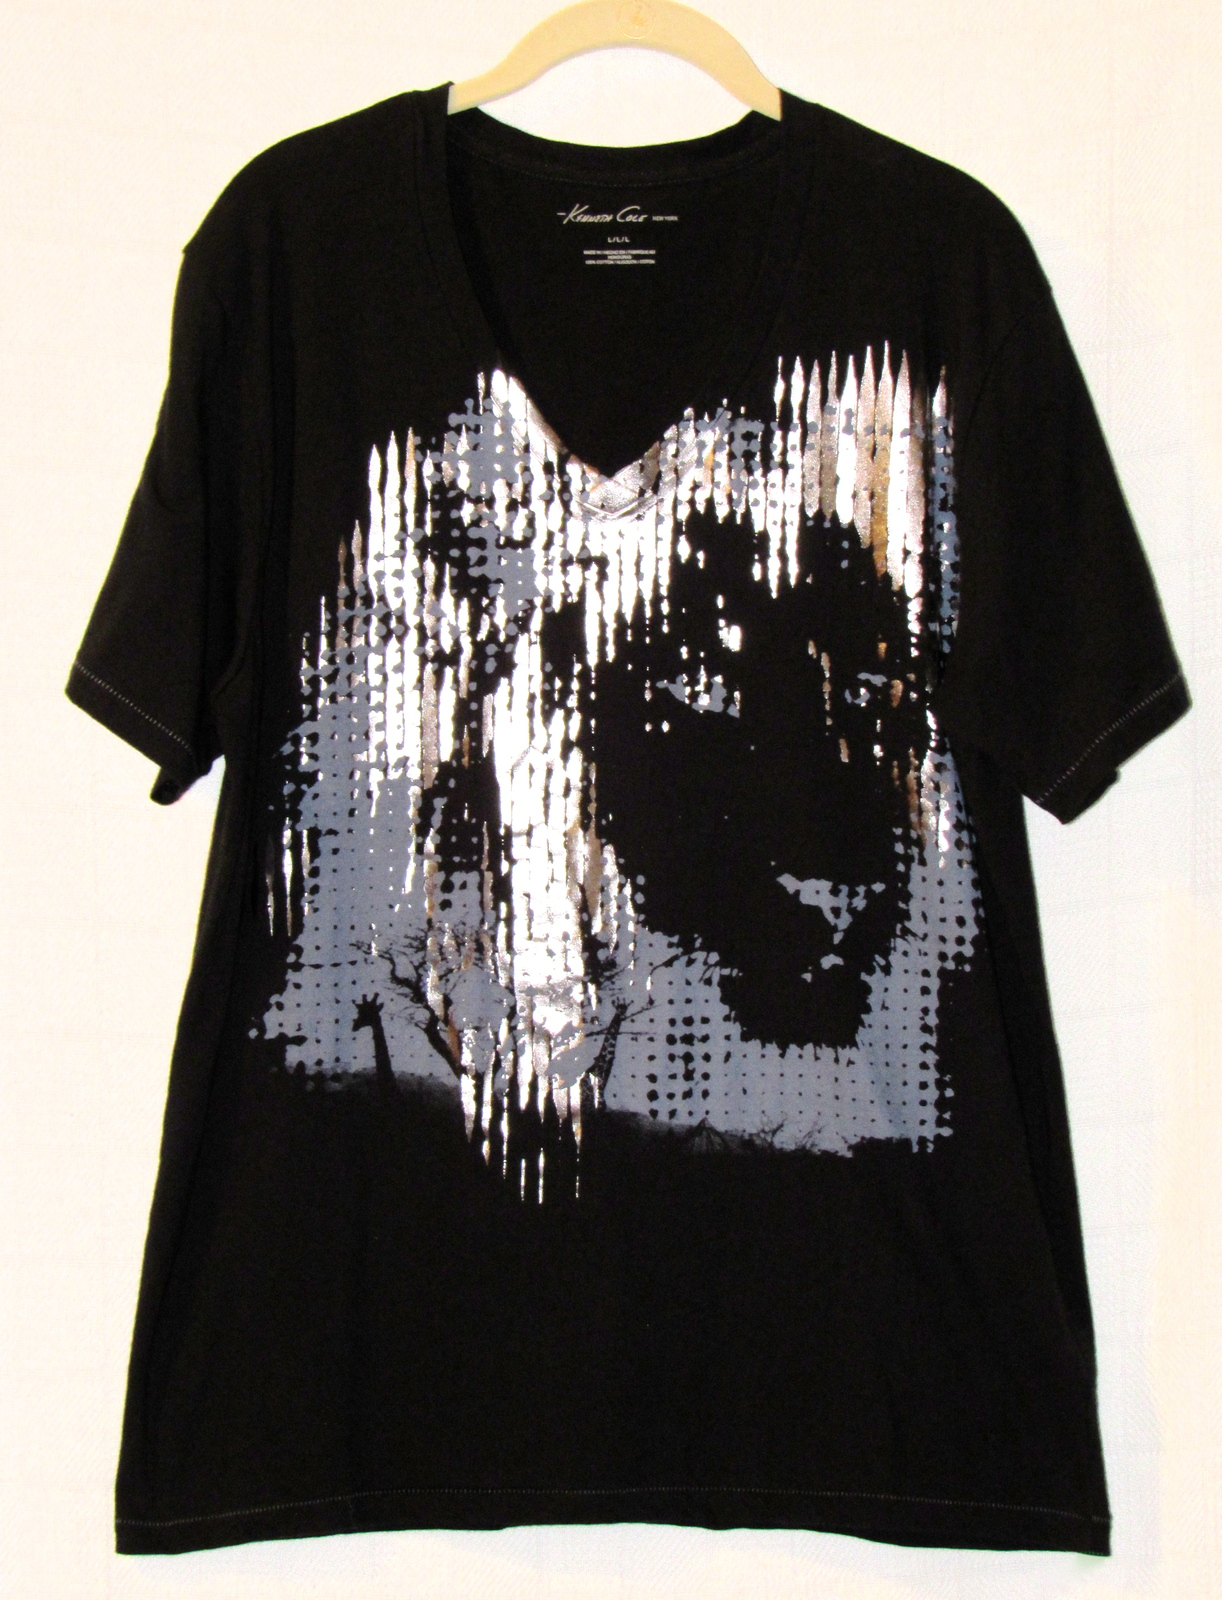 Kenneth Cole NY Metallic Lion Graphic Tee Black Cotton Short-Sleeve V-Neck S: L